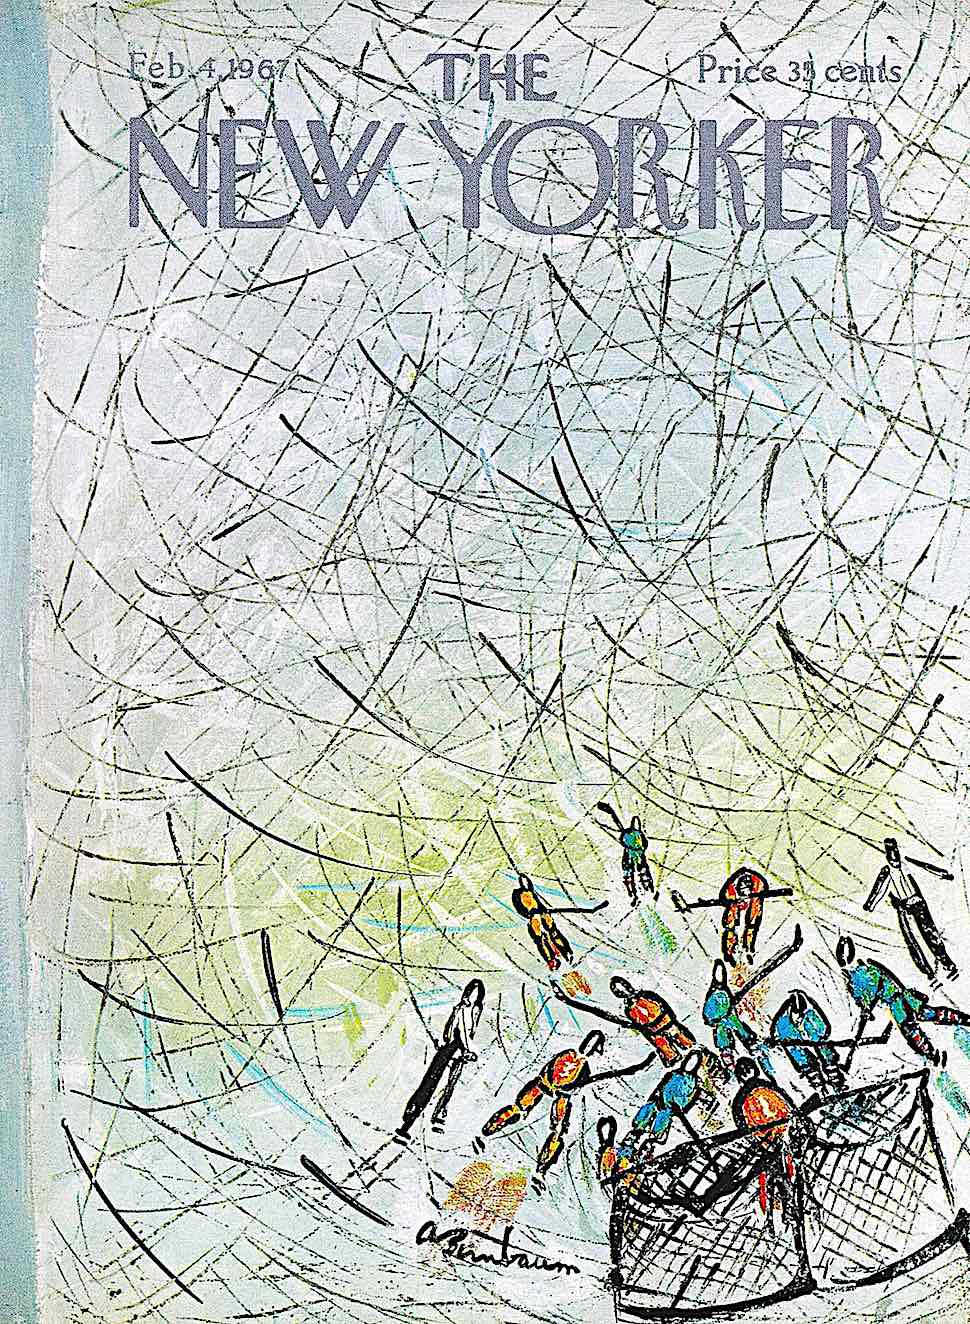 an Abe Birnbaum 1967 illustration about hockey for the February 4 New Yorker Magazine